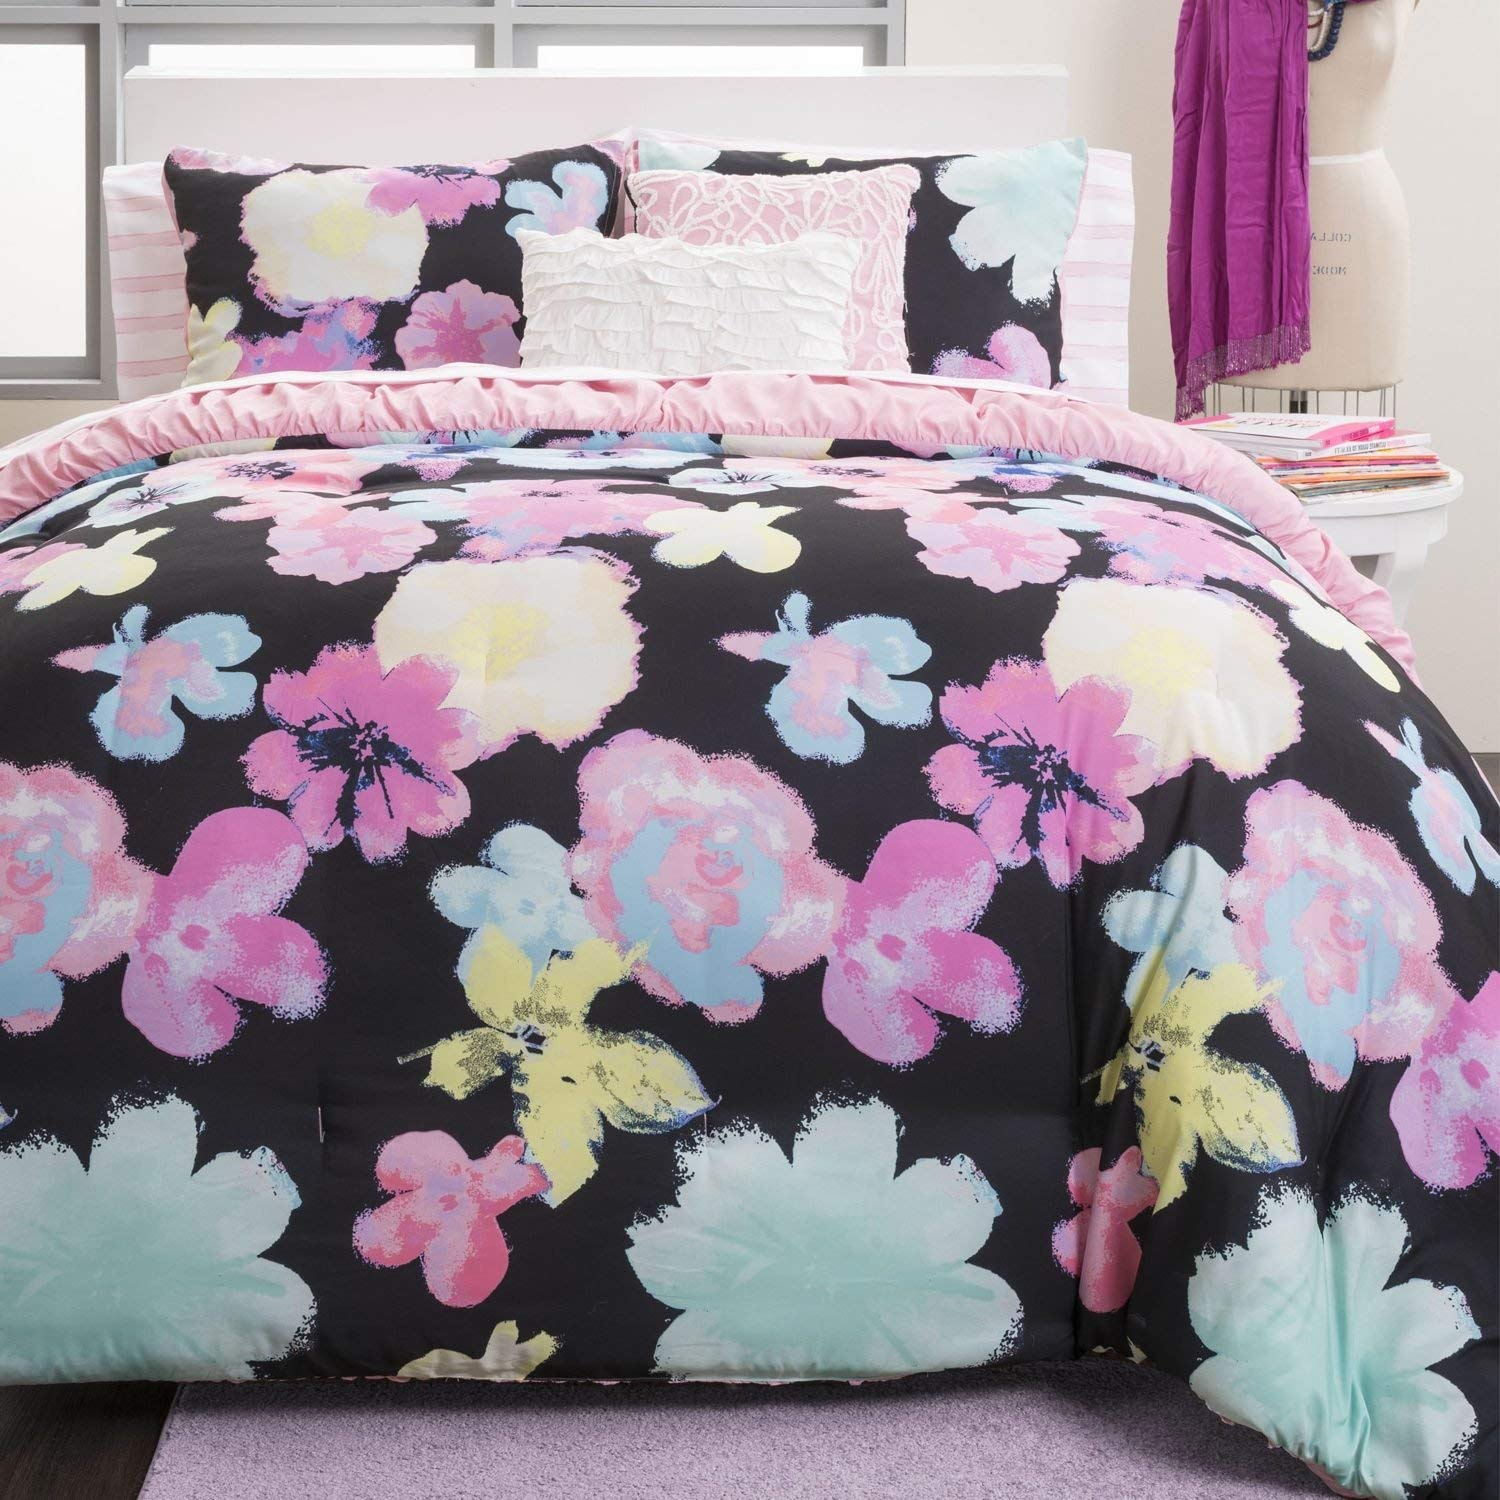 Cheap Pink And Black Comforter Find Pink And Black Comforter Deals